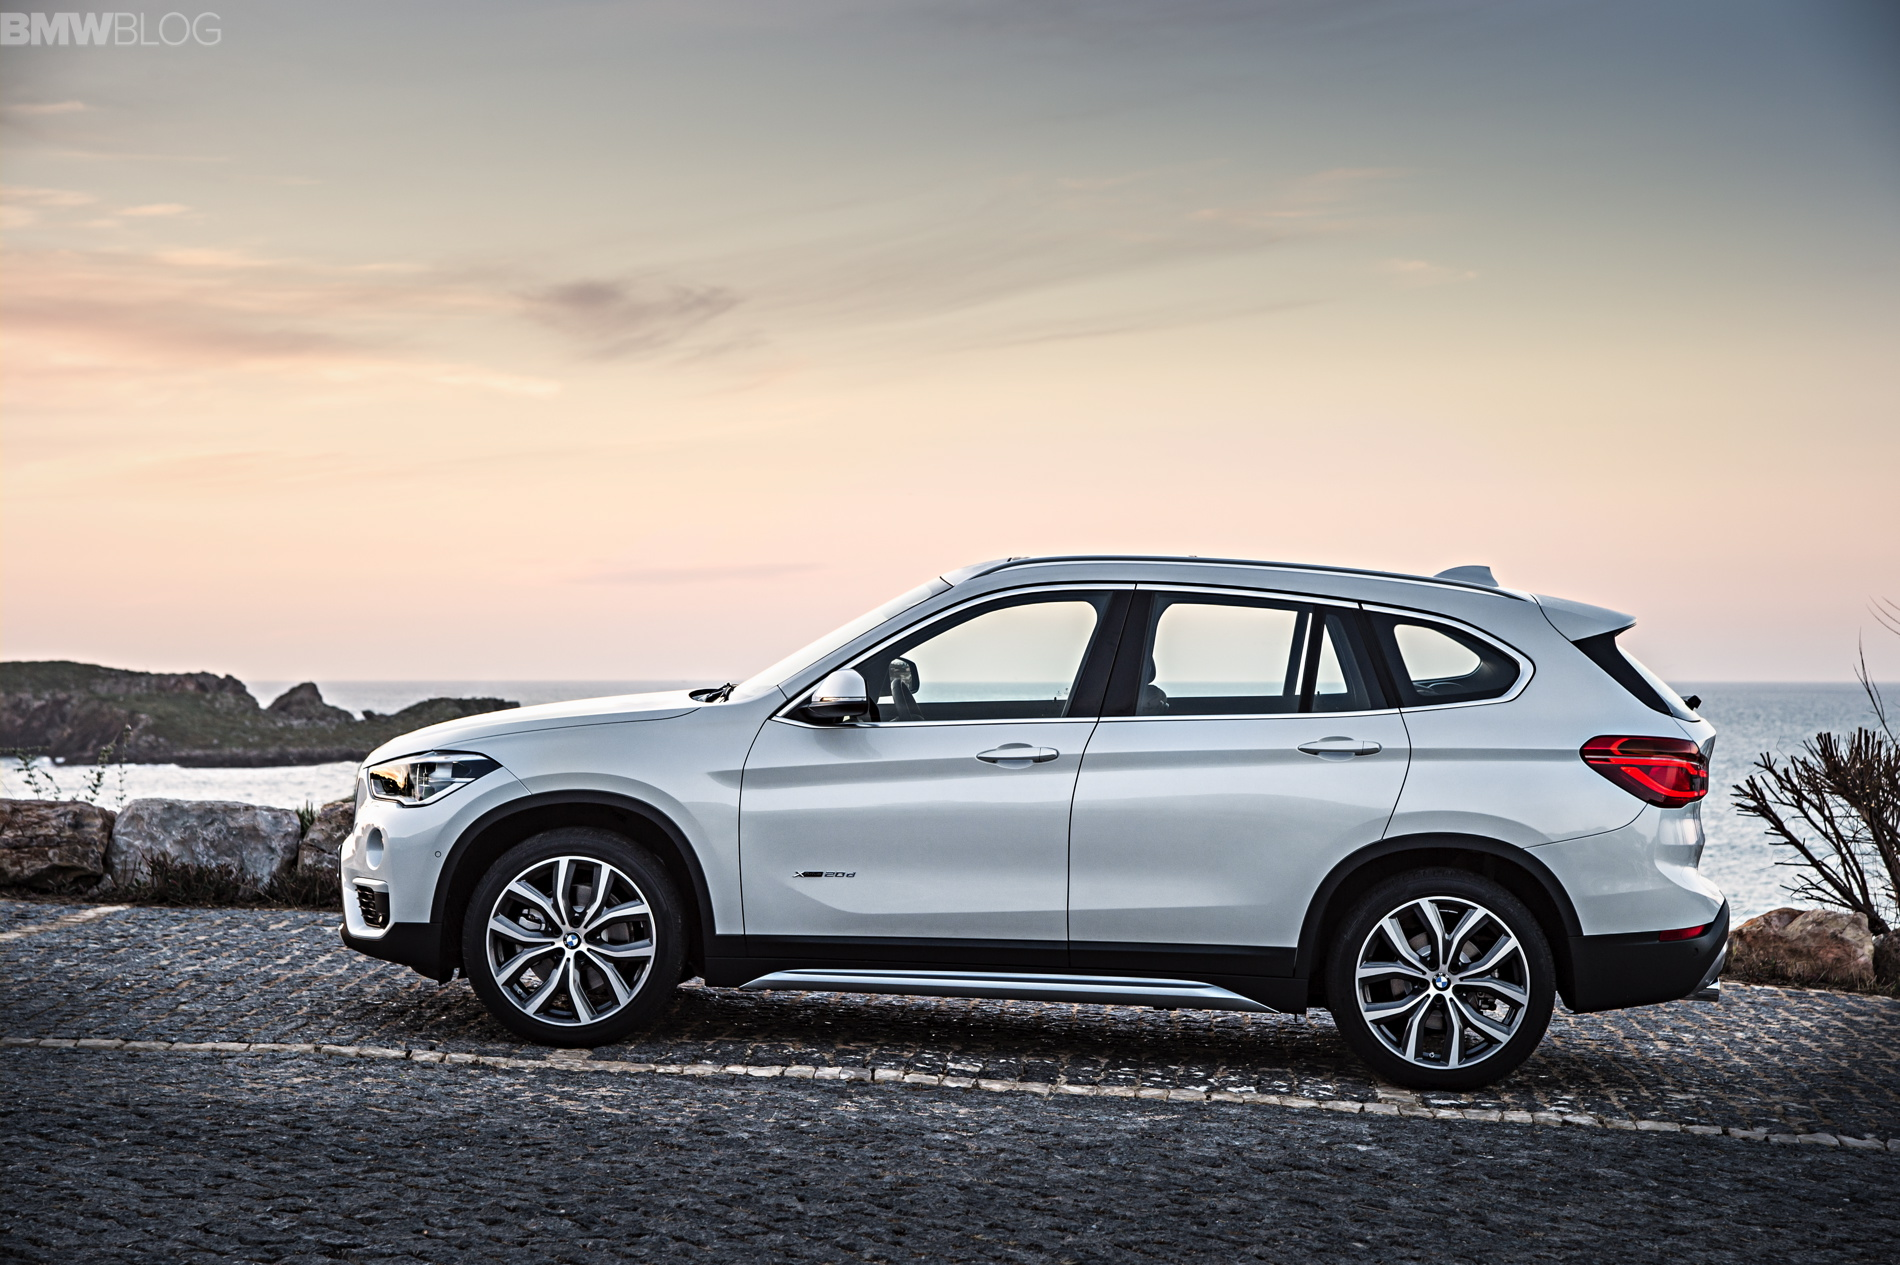 2016 Bmw X1 World Premiere